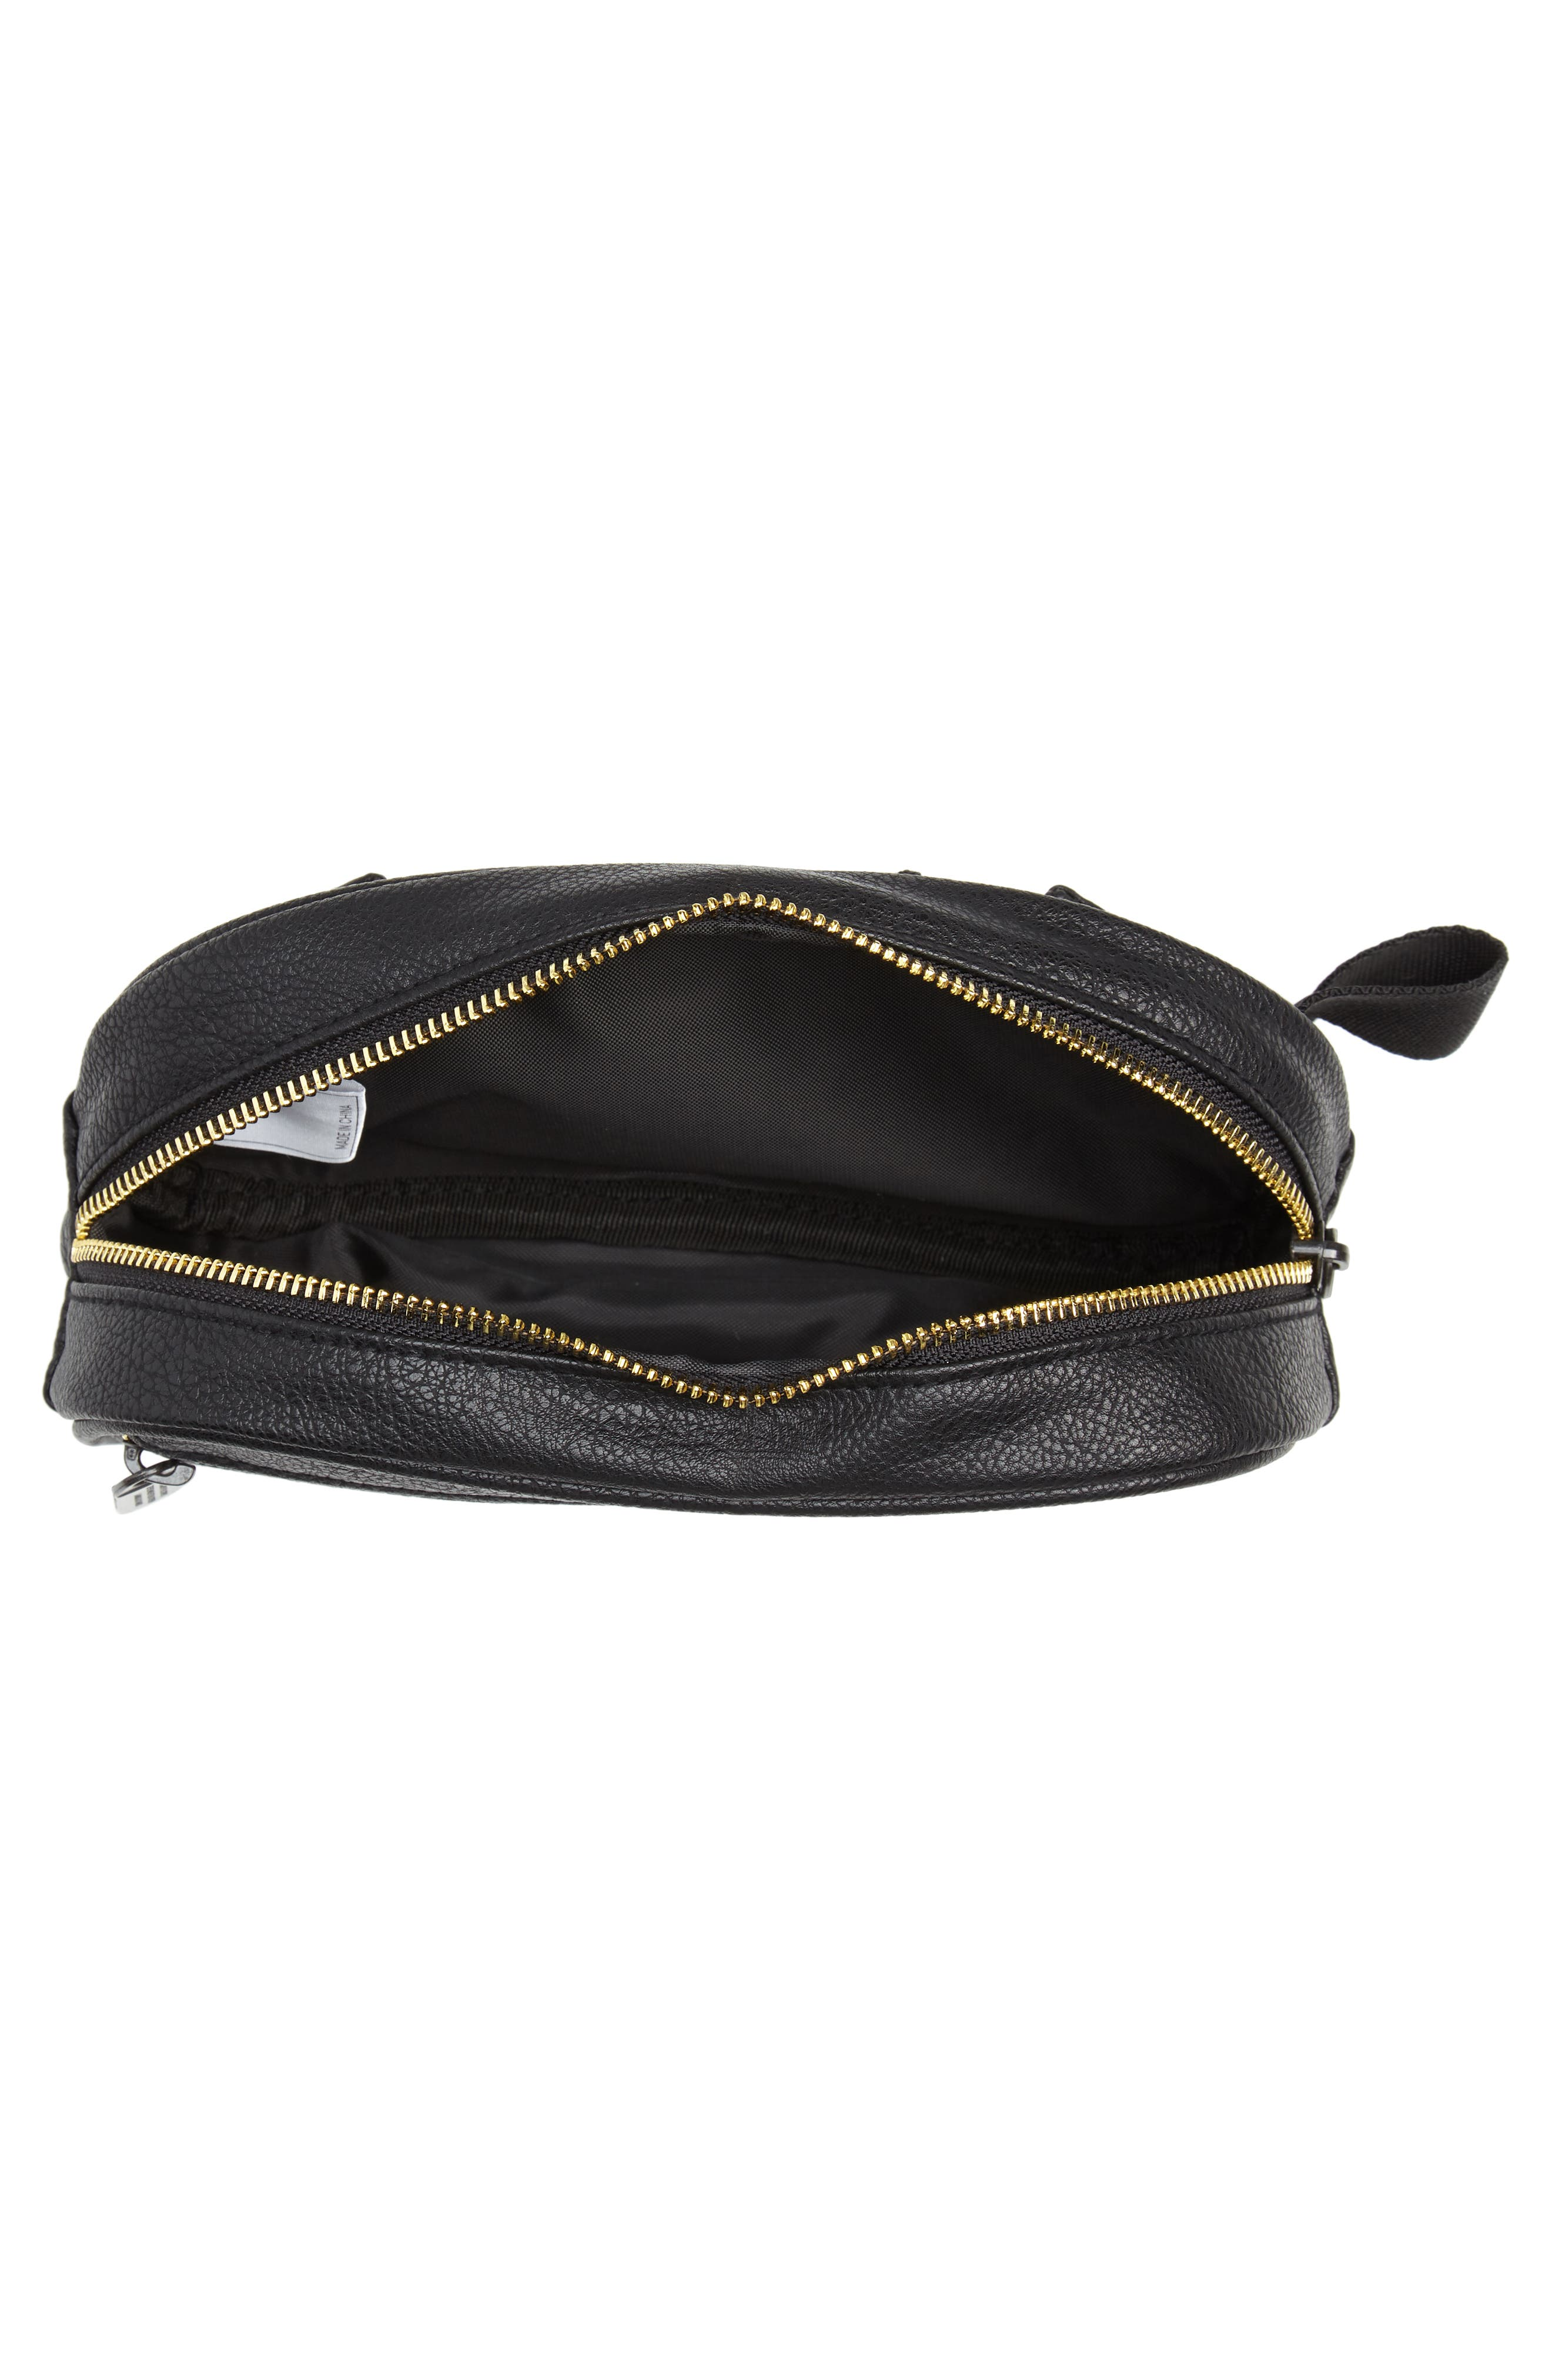 adidas Ori Faux Leather Fanny Pack,                             Alternate thumbnail 5, color,                             001